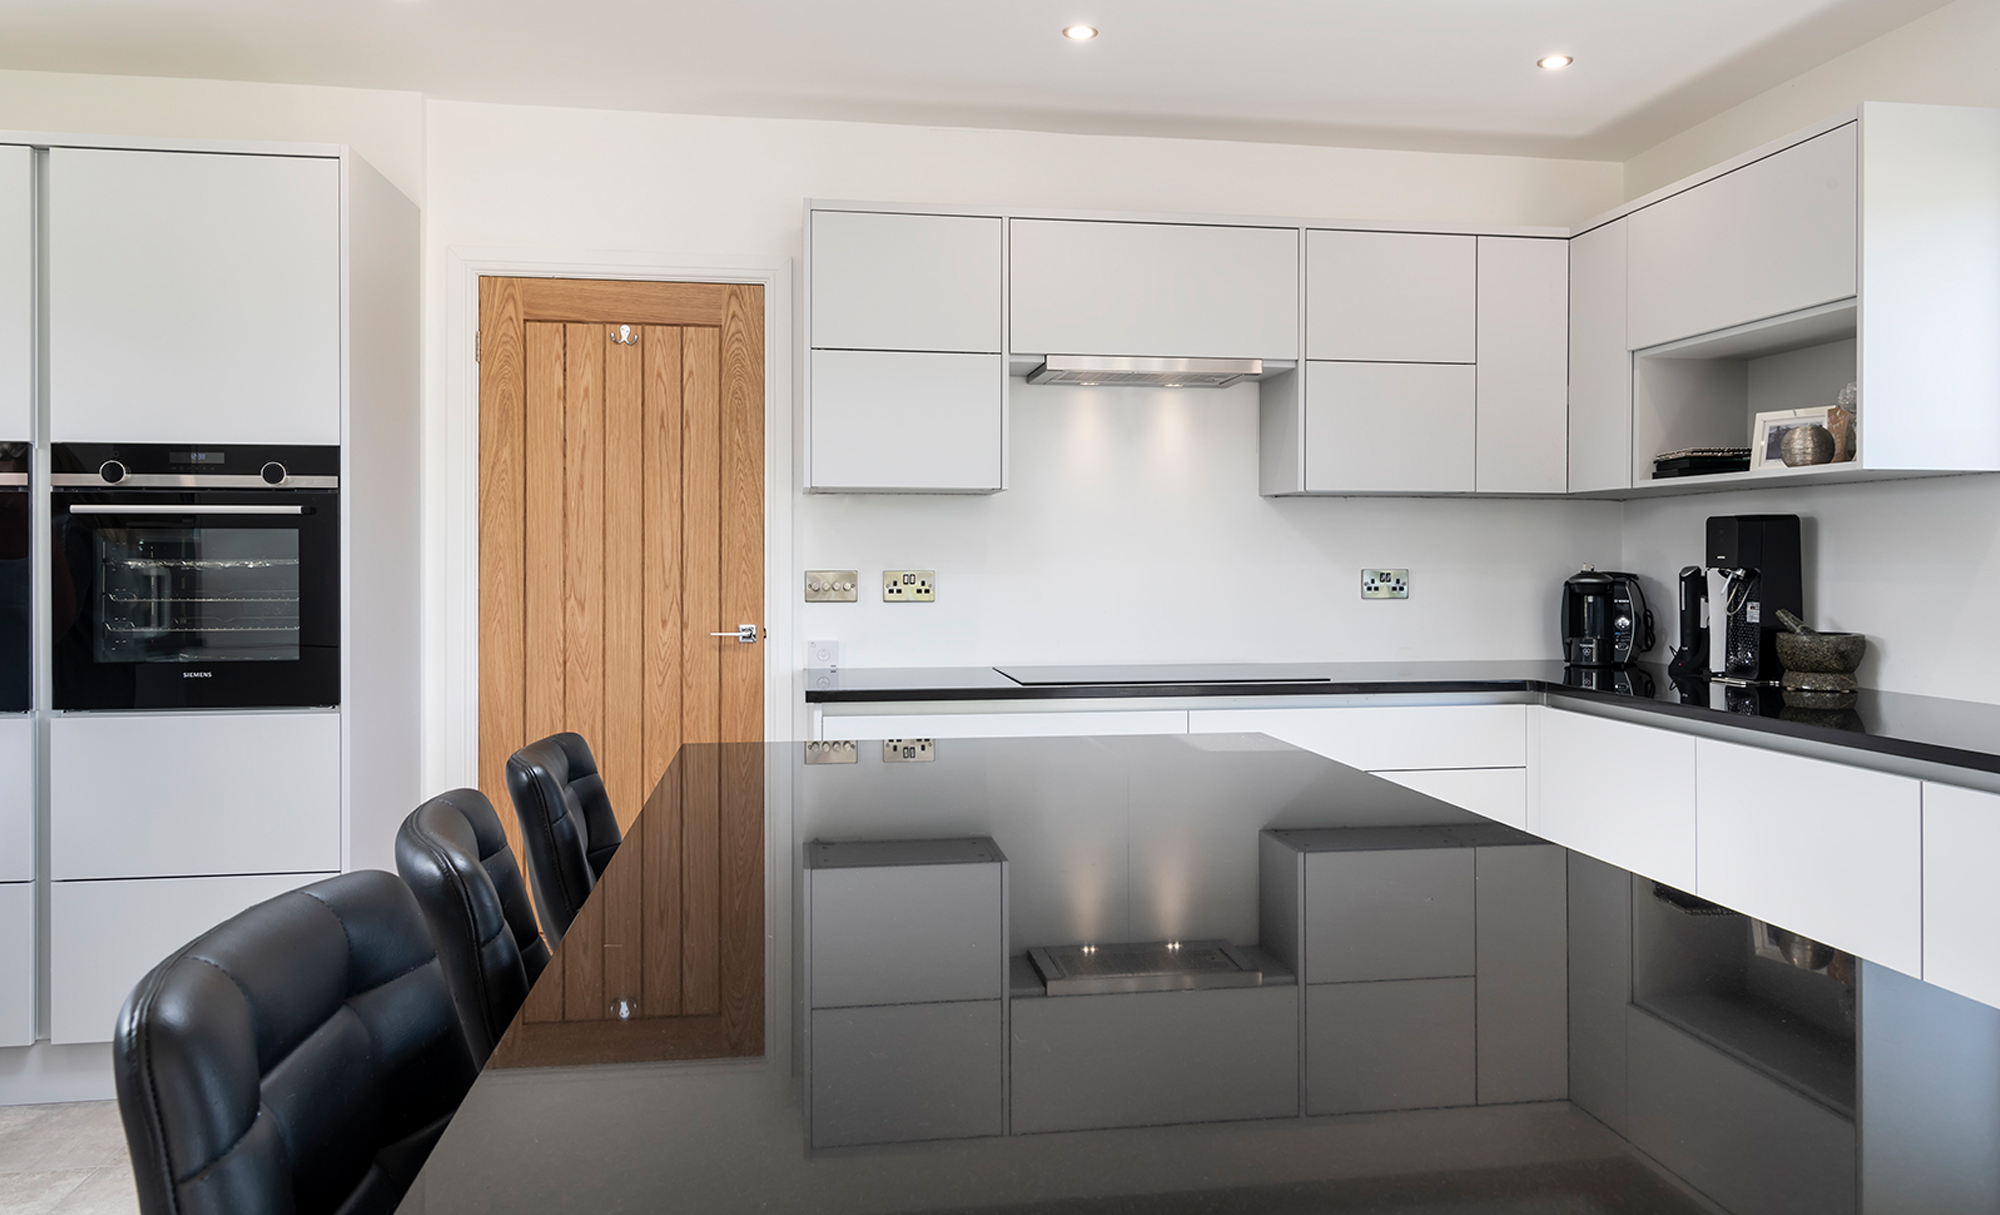 Portishead Zola Matte kitchen with black worktop